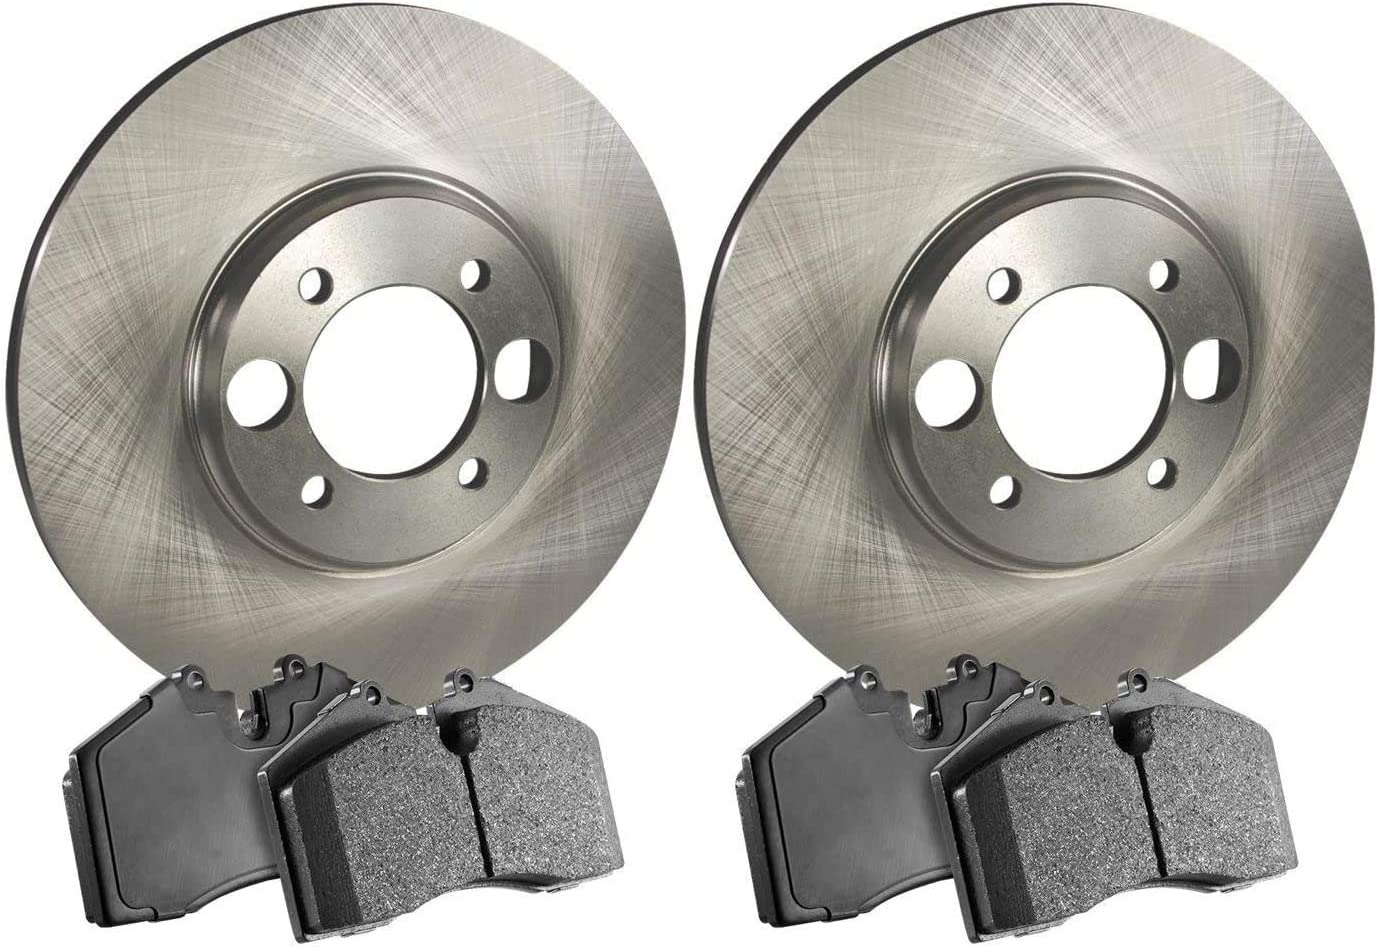 Stirling Front Disc Brake Rotors and Ceramic Brake Pads For 2014 Toyota Venza AWD 3.5 Liter V6 Two Years Warranty